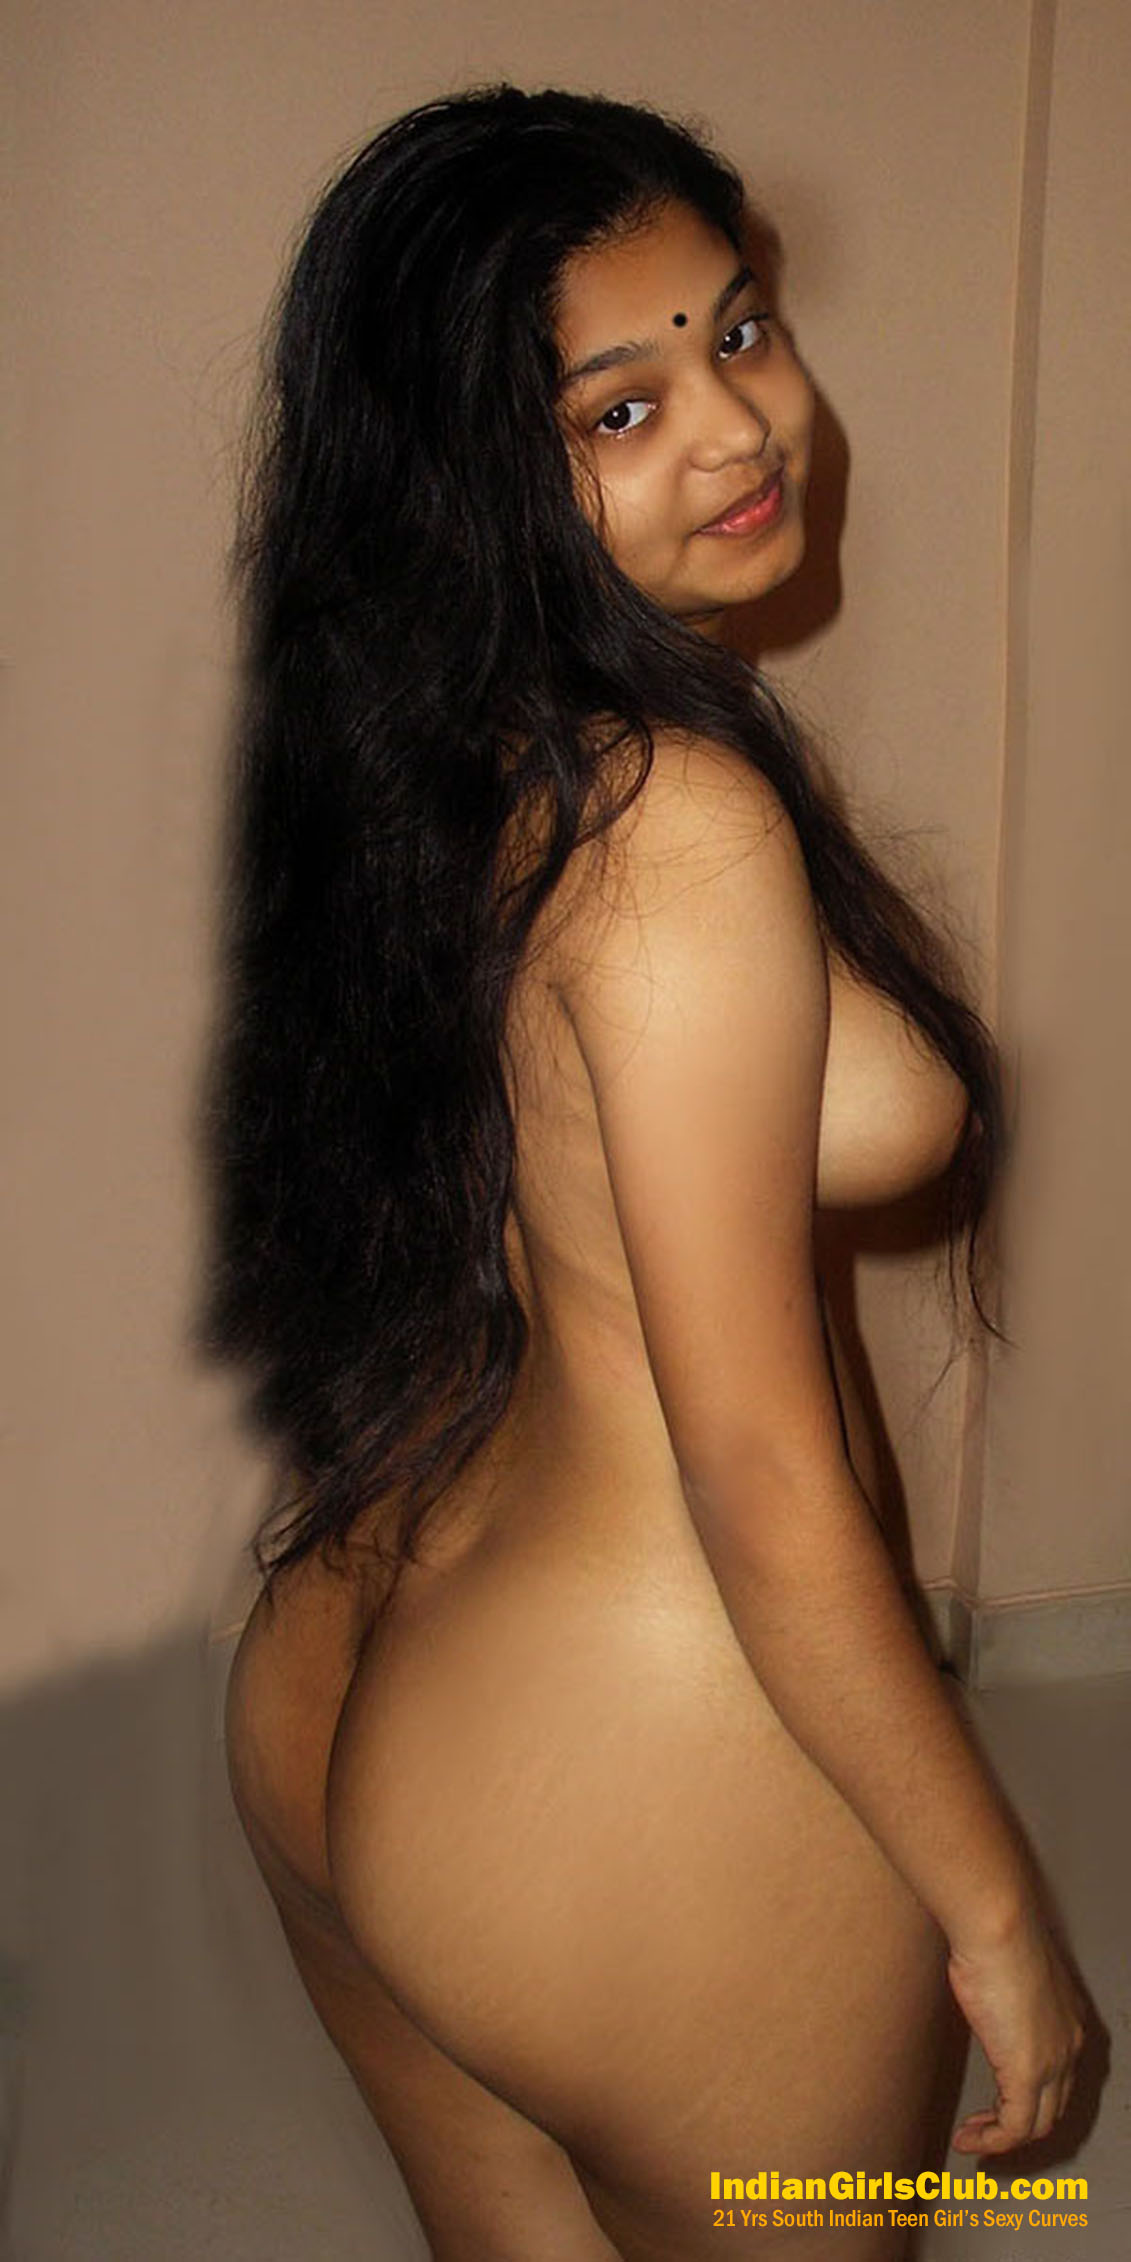 Sexey young girls nude